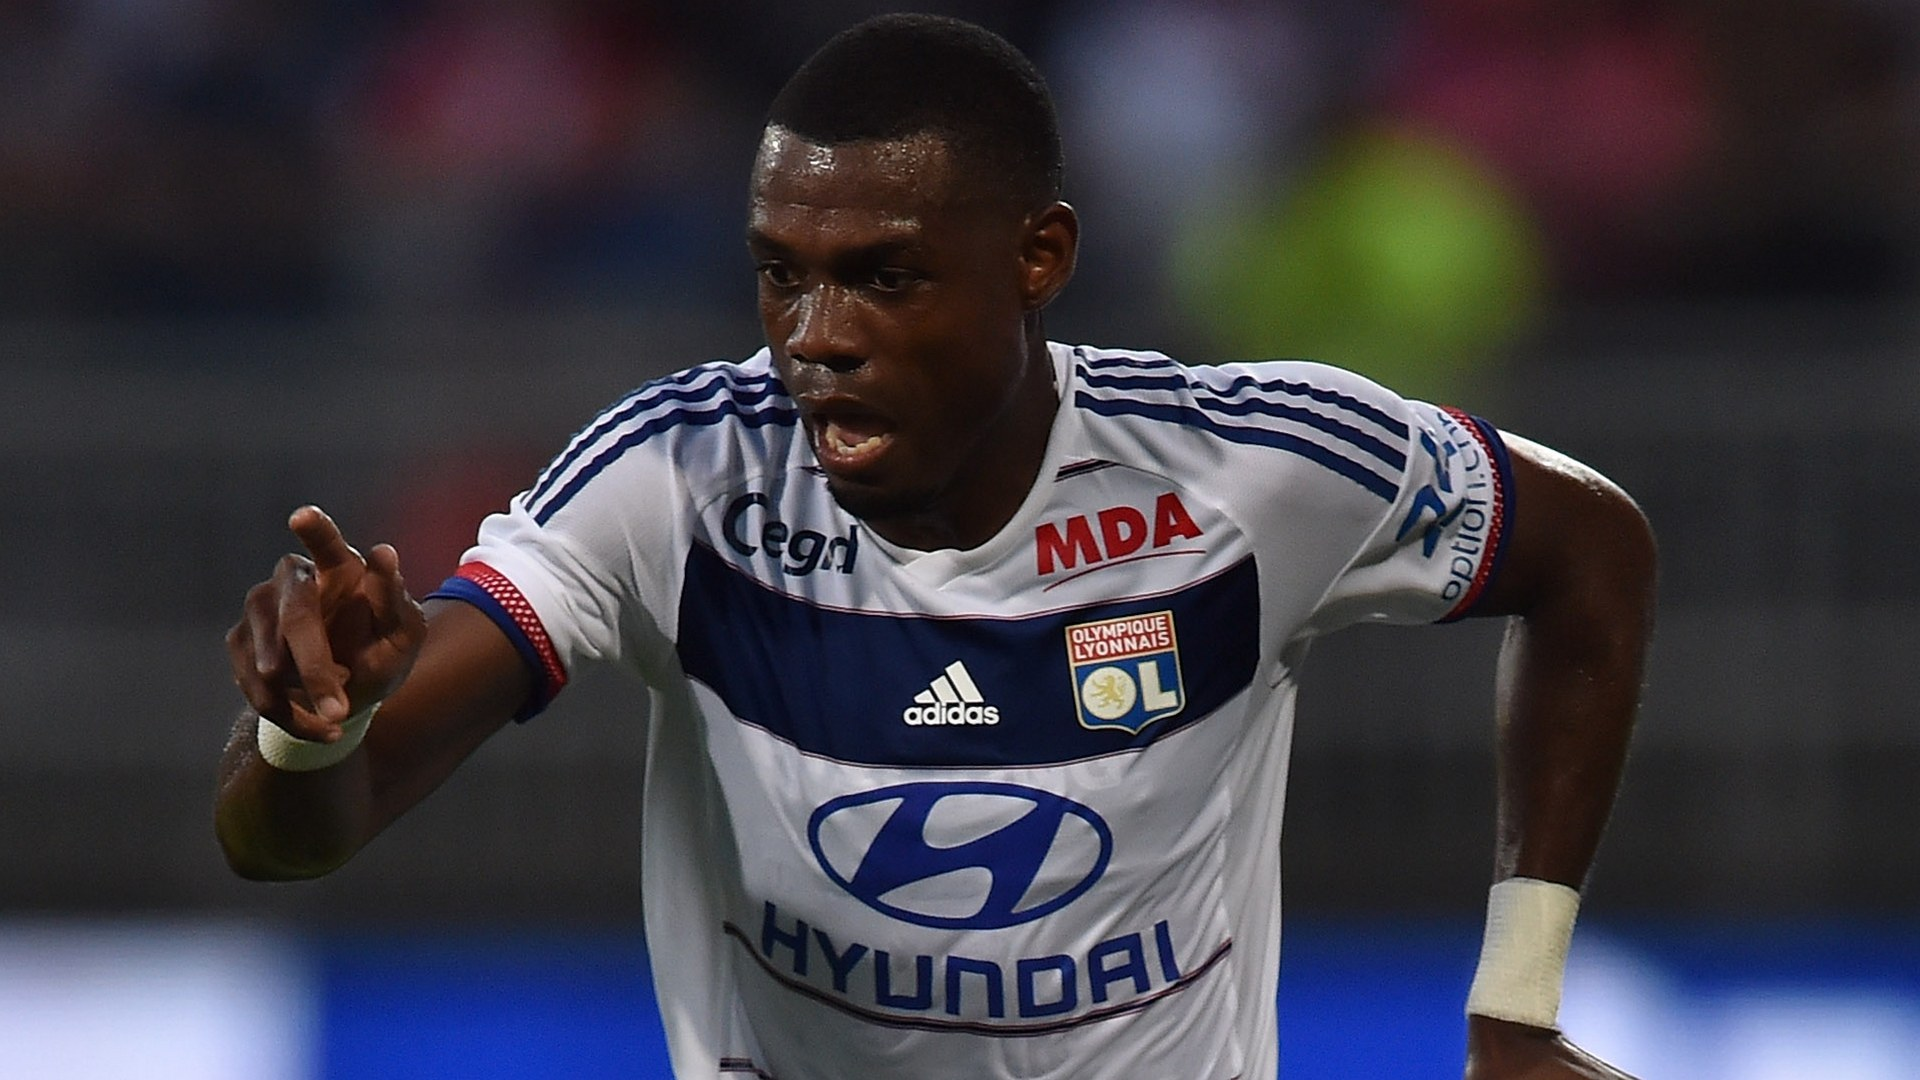 Bedimo: Former Lyon and Marseille defender quits football at age 36